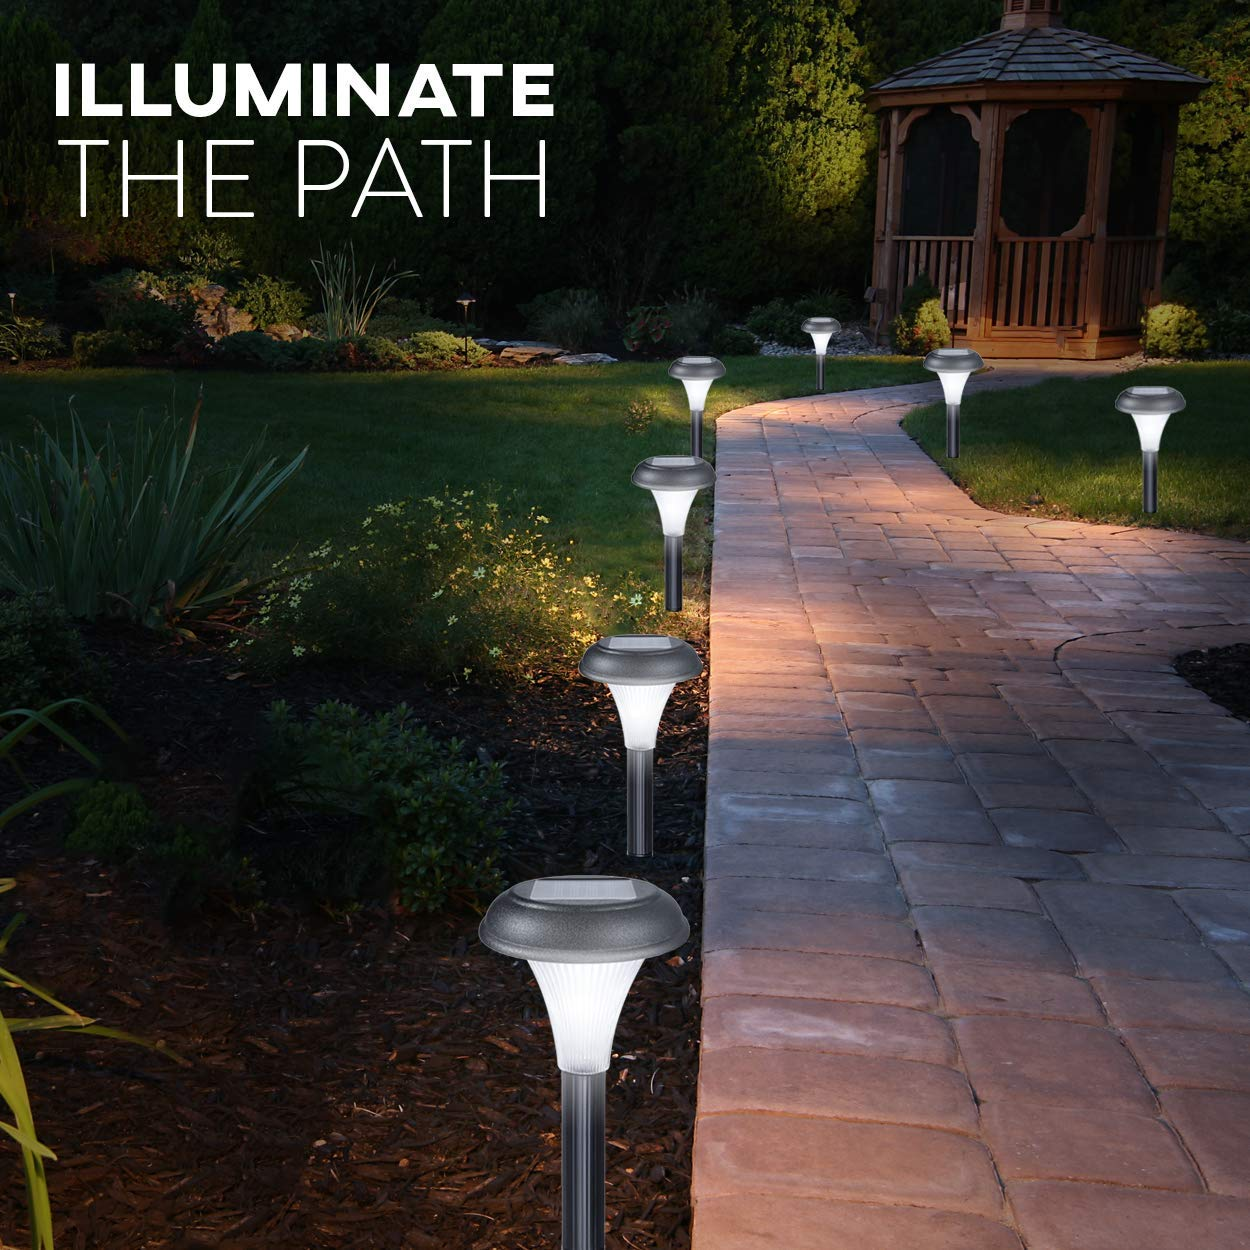 Gardenbliss Best Solar Lights For Outdoor Pathway 10 Brightest Wiring Outside Landscape Light Set Walkway Patio Path Lawn Garden Yard Decor Double Waterproof Seal